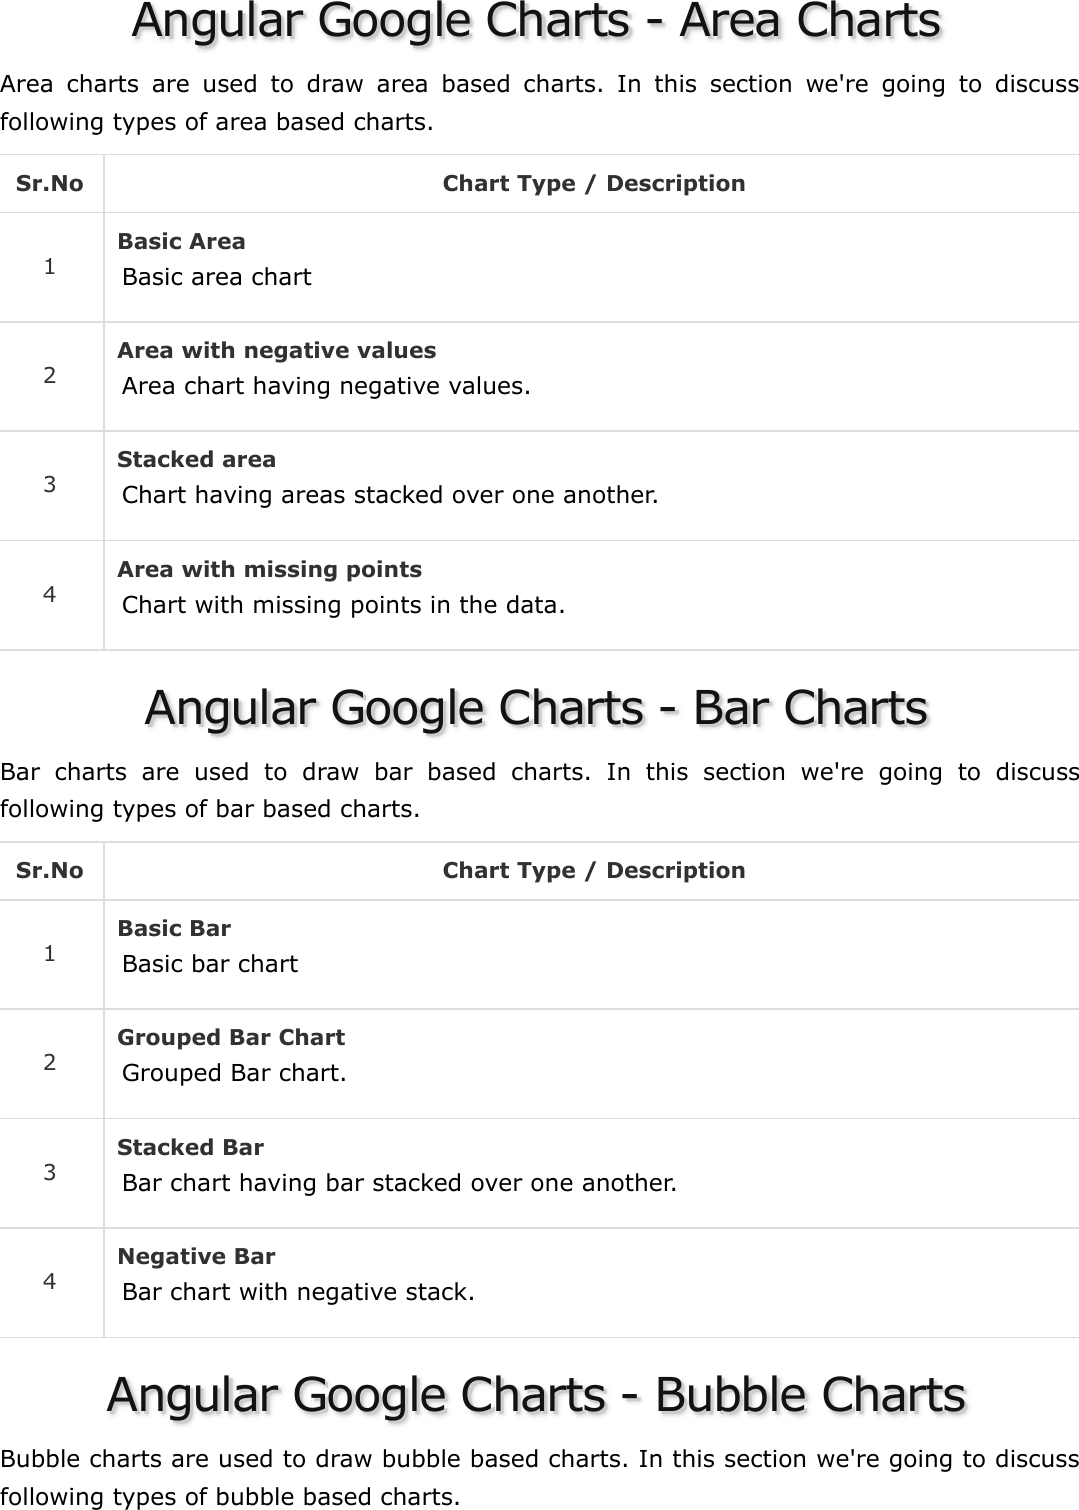 Angular Google Charts Quick Guide